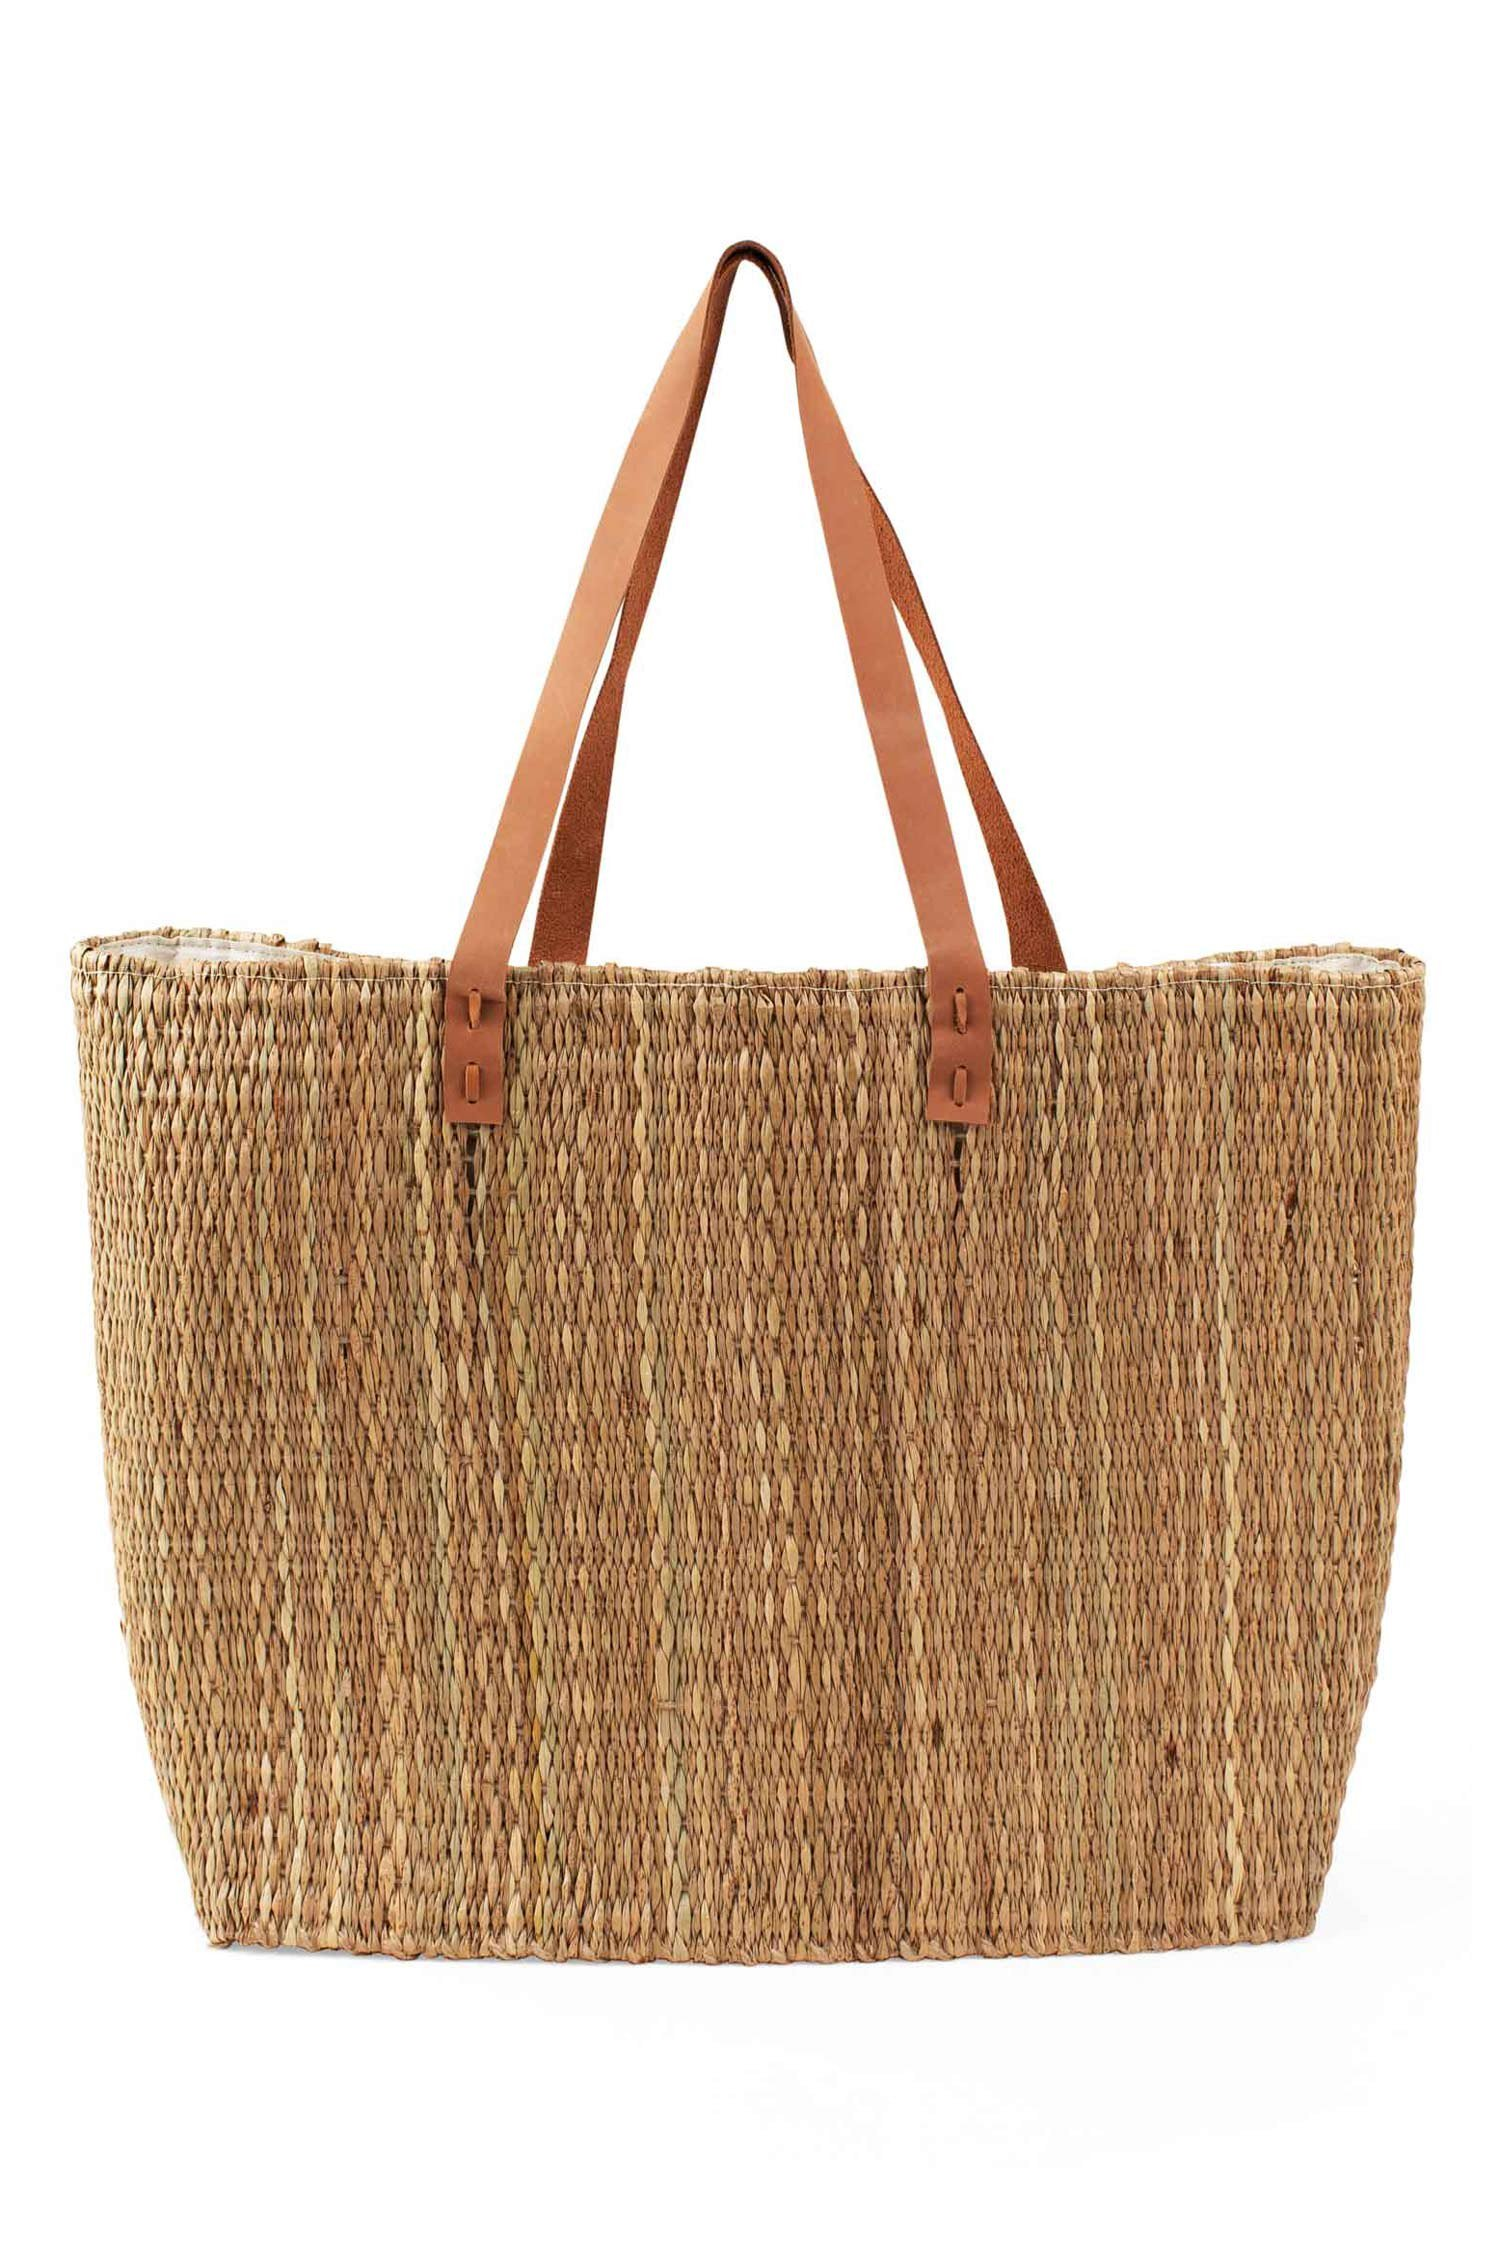 Handcrafted in rural Bangladesh by women of a fair-trade organization.